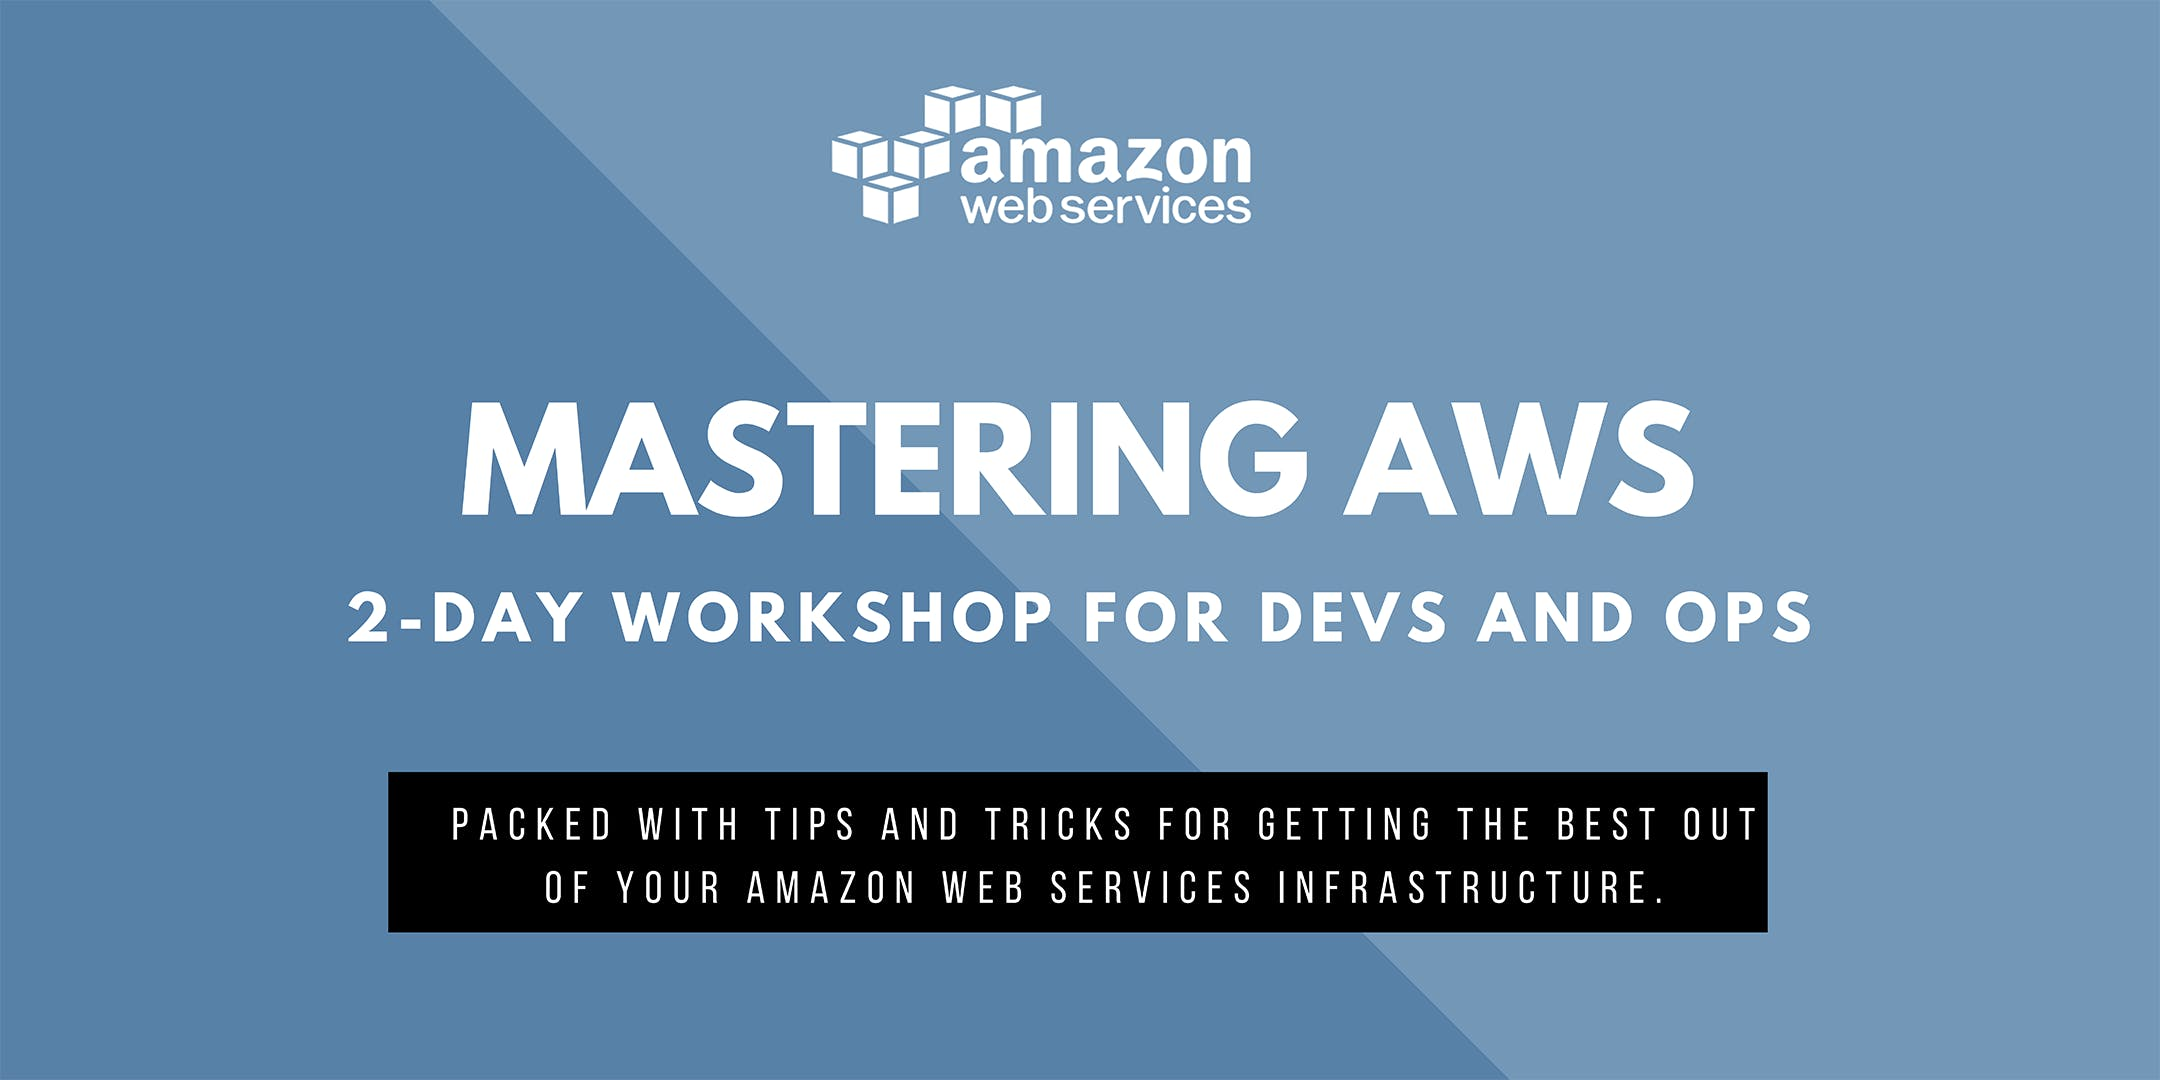 TOP Mastering Amazon Web Services (Istanbul)